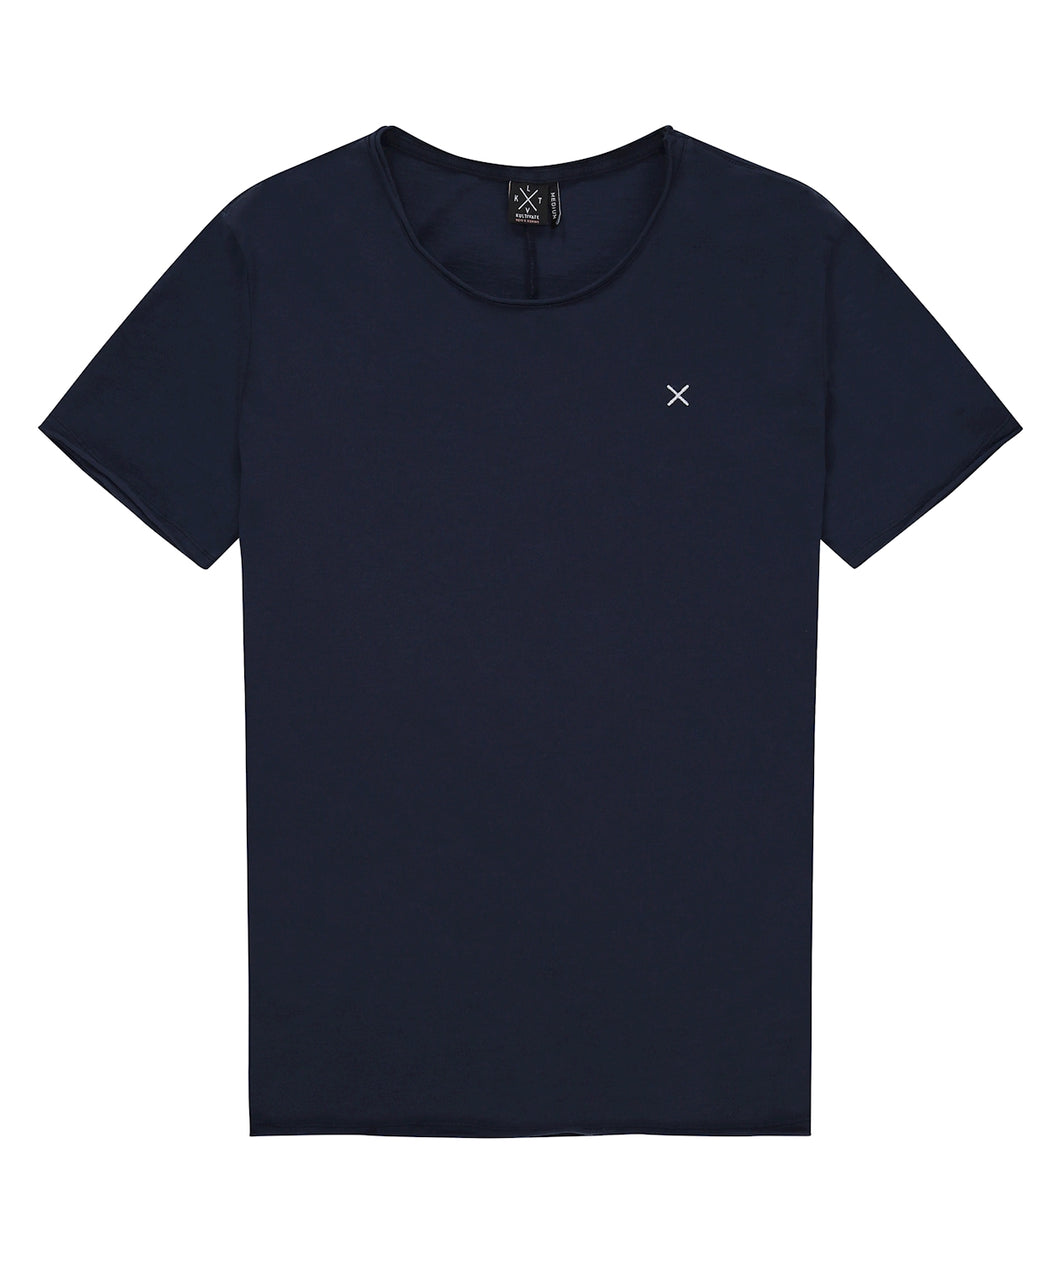 T shirt Kultivate Wrecker 2001020205 319 Dark navy